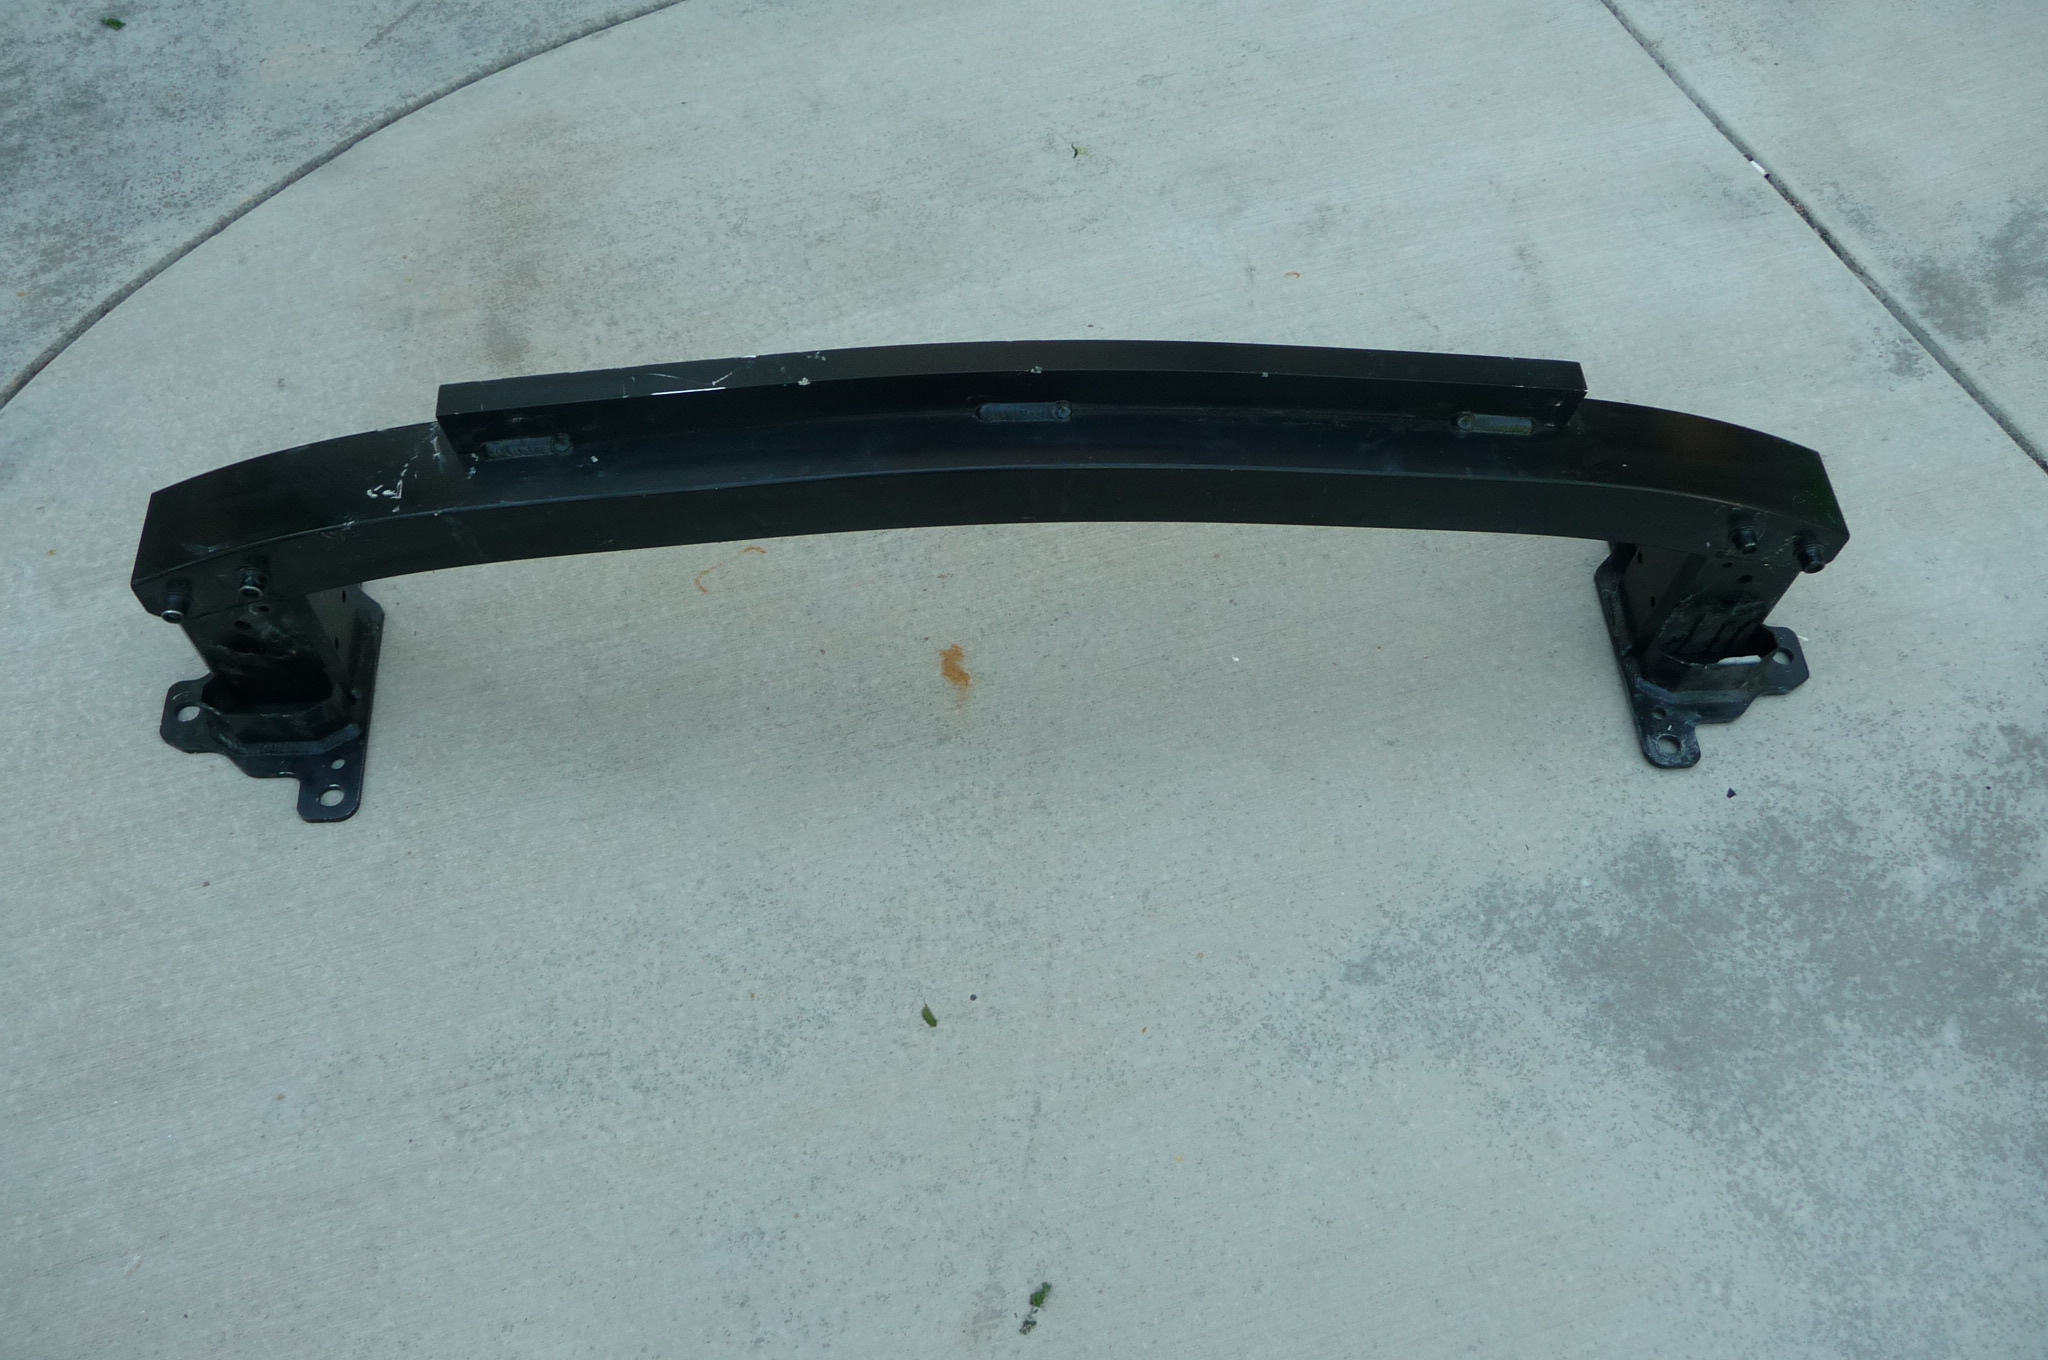 Bentley Continental GT GTC Front Bumper Reinforcement Beam 3W3807105C - Used Auto Parts Store | LA Global Parts